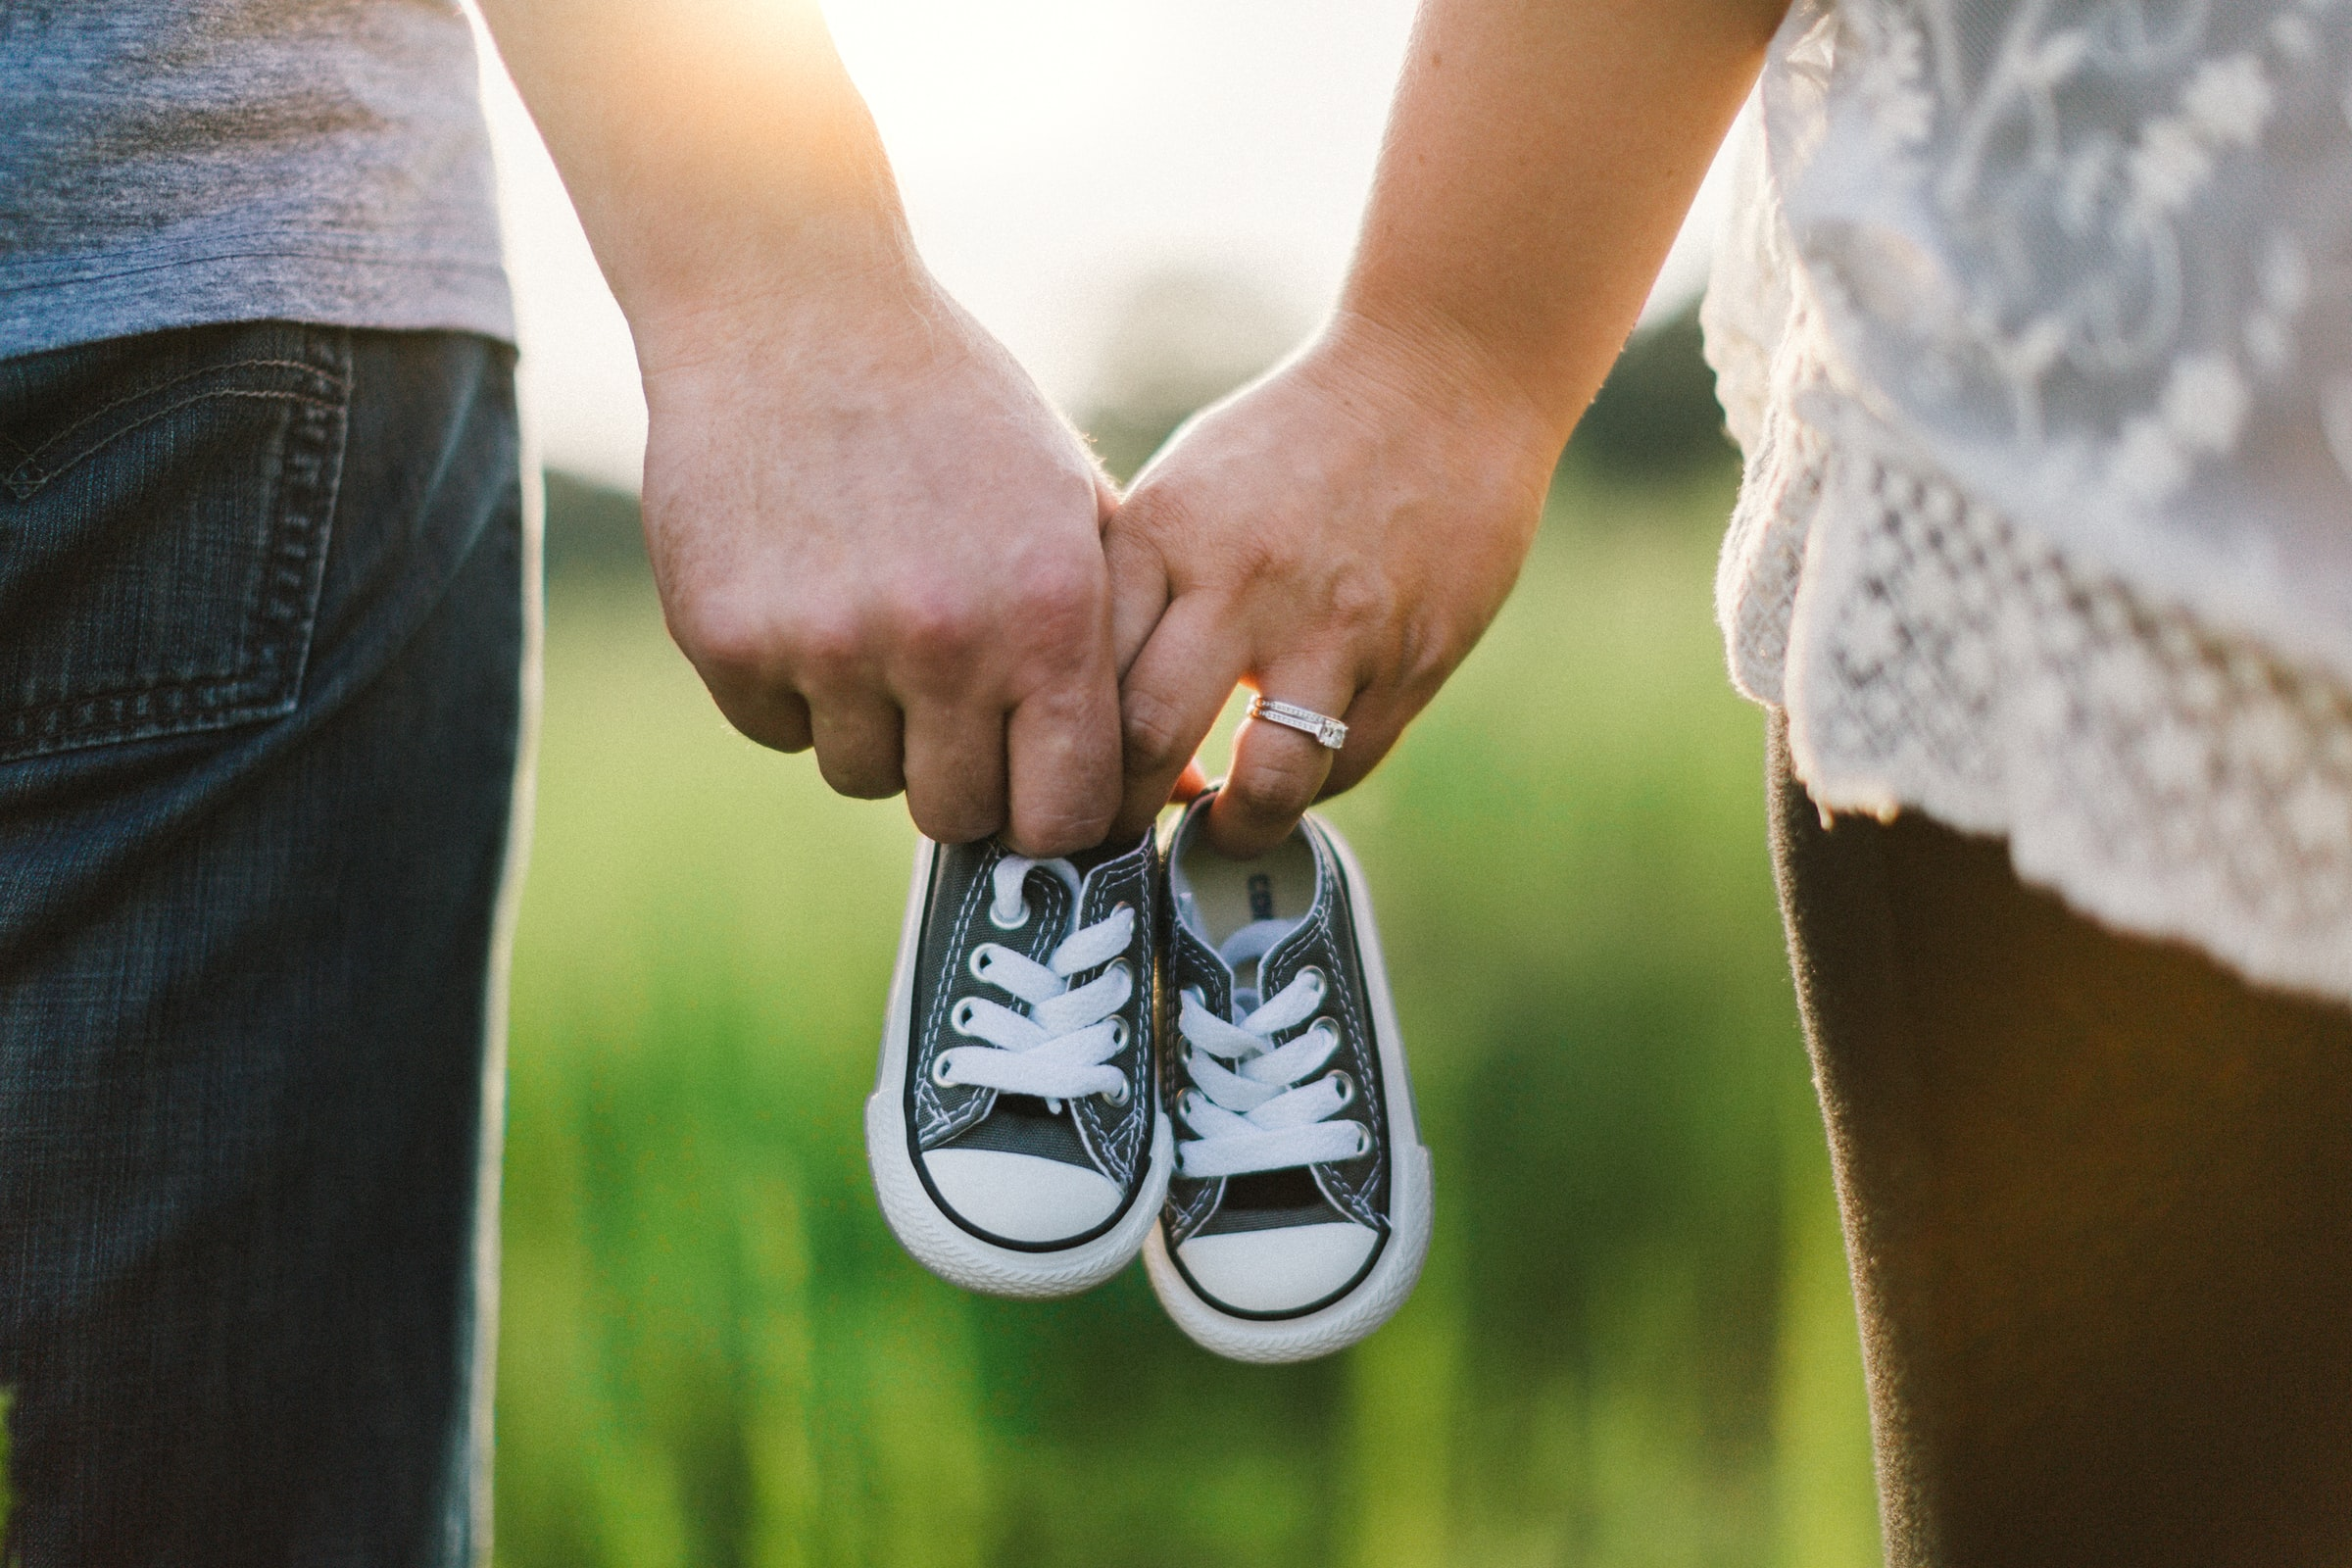 Ways to optimize your fertility to get pregnant